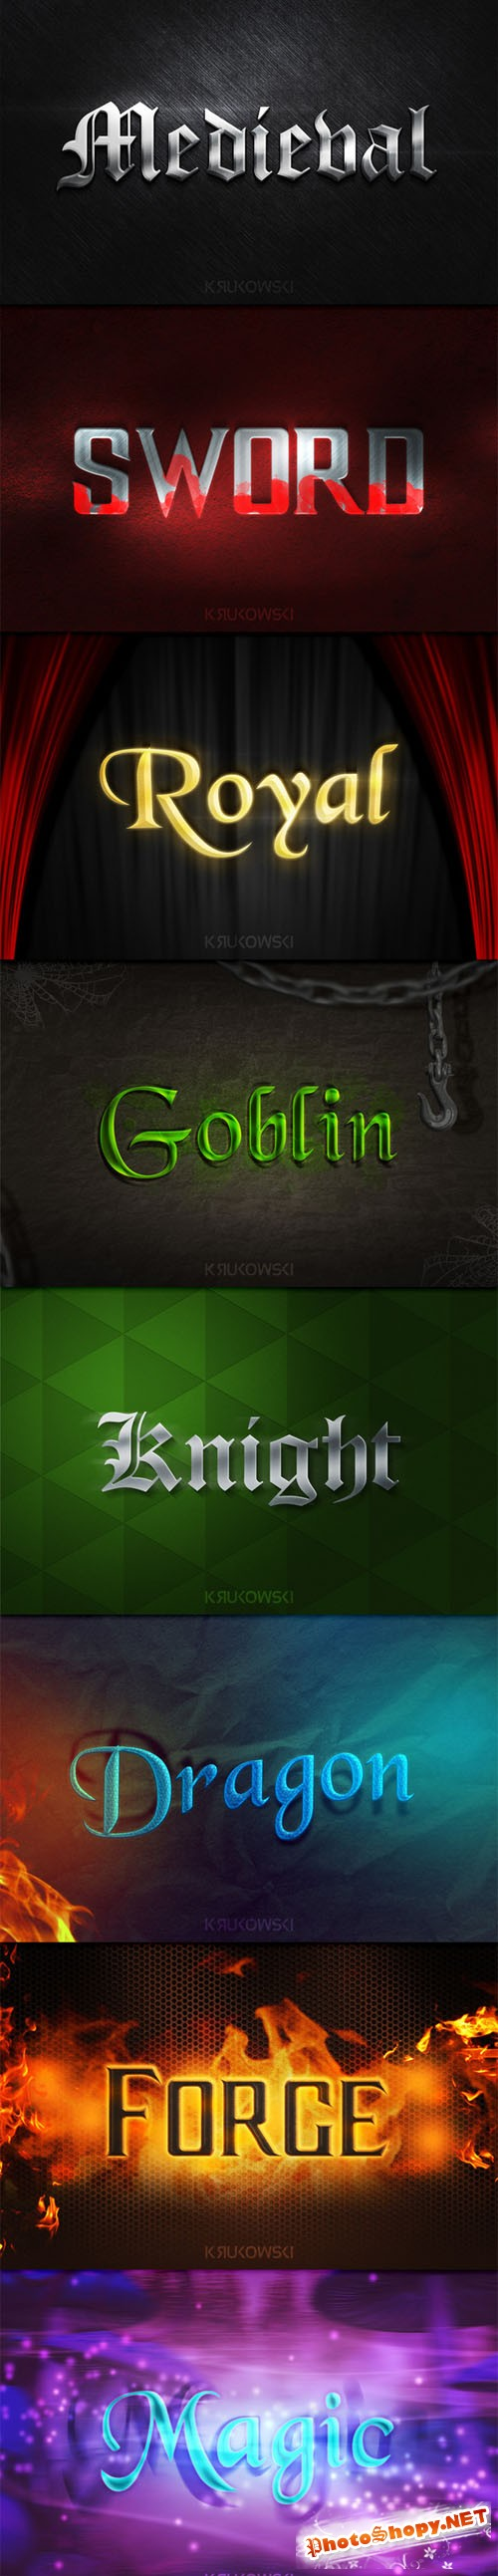 Medieval Text Effects - CM 214290